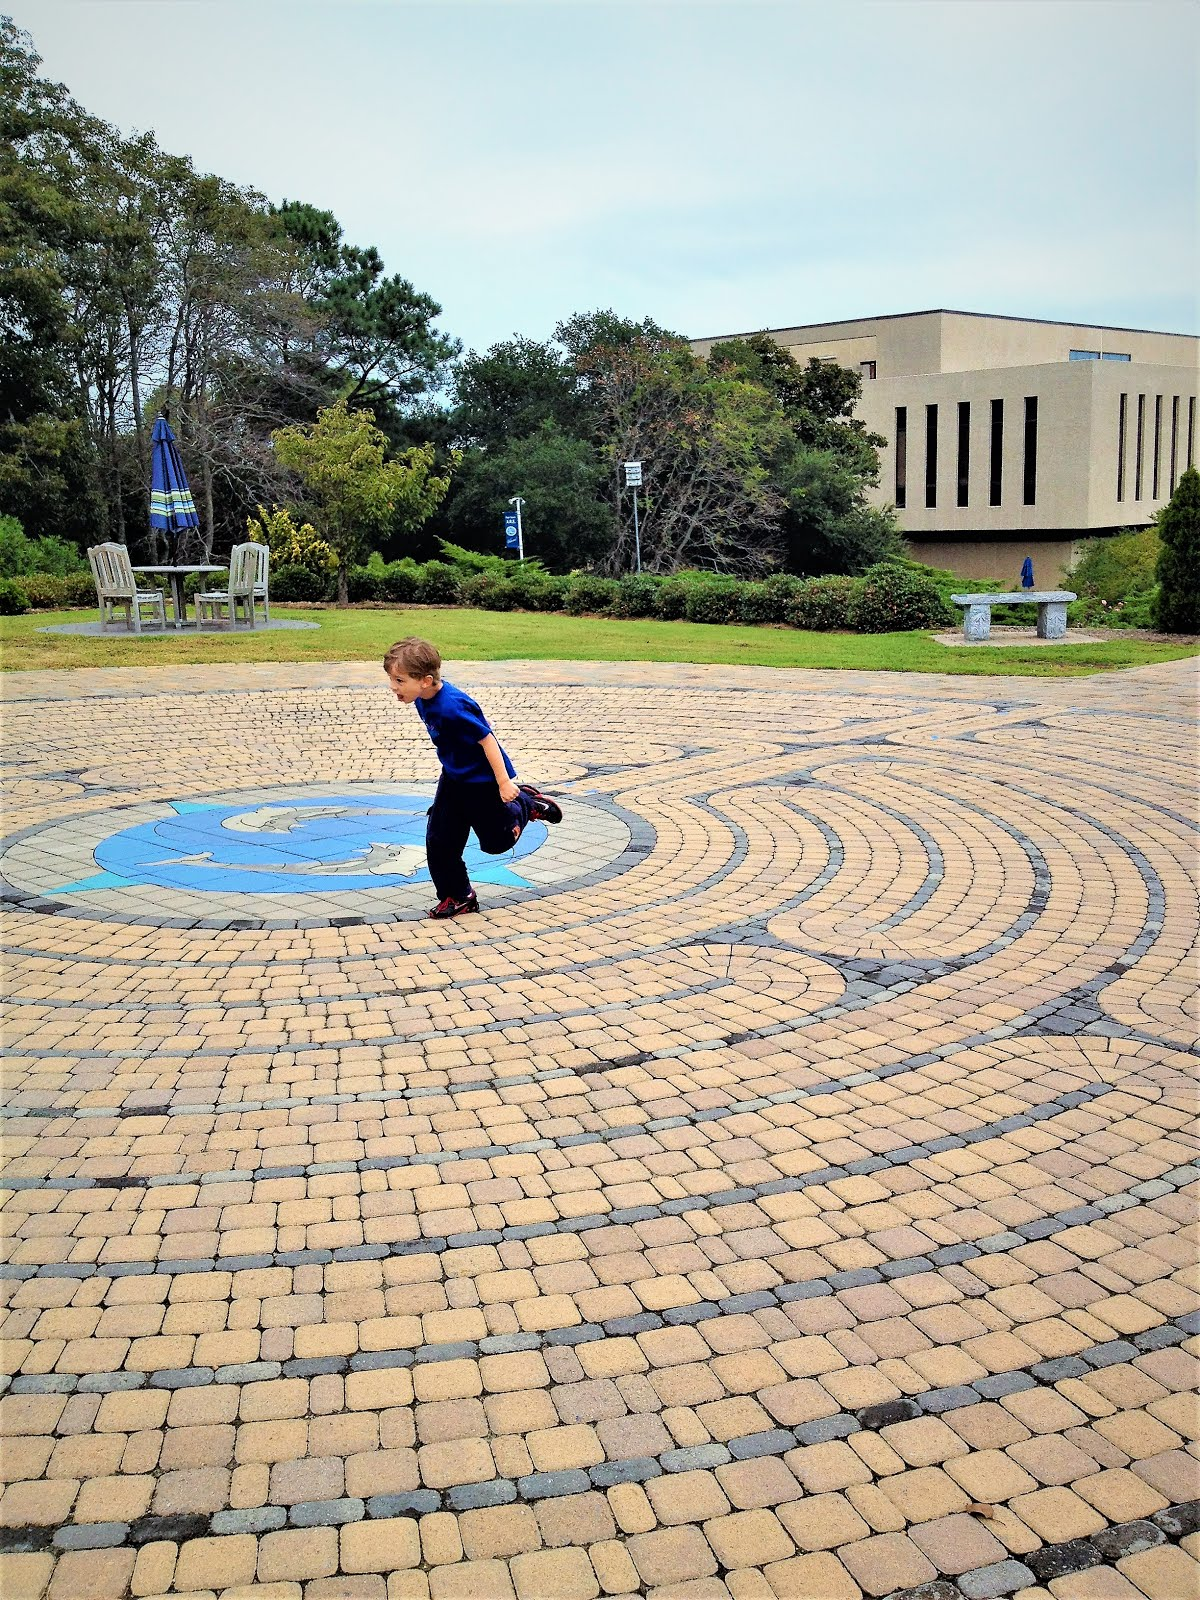 Phoenix at the Edgar Cayce labyrinth